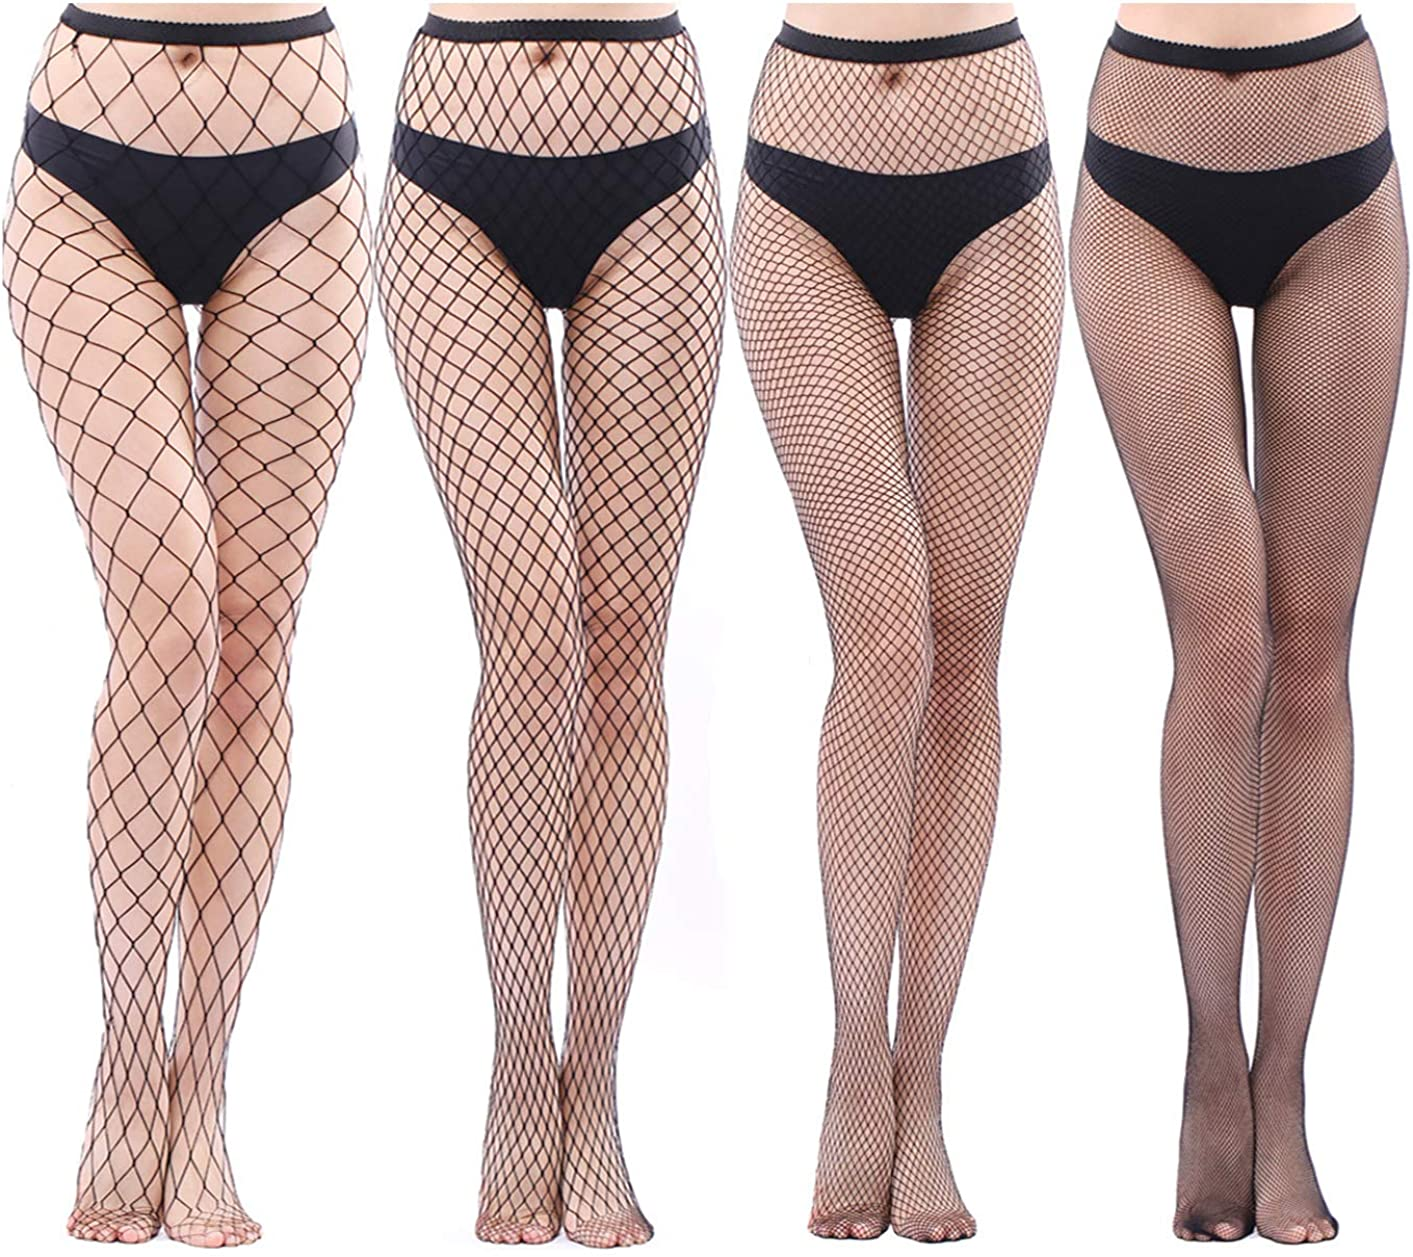 FITU Womens High Waist Patterned Fishnet Tights Suspenders Pantyhose Thigh High Stockings Black